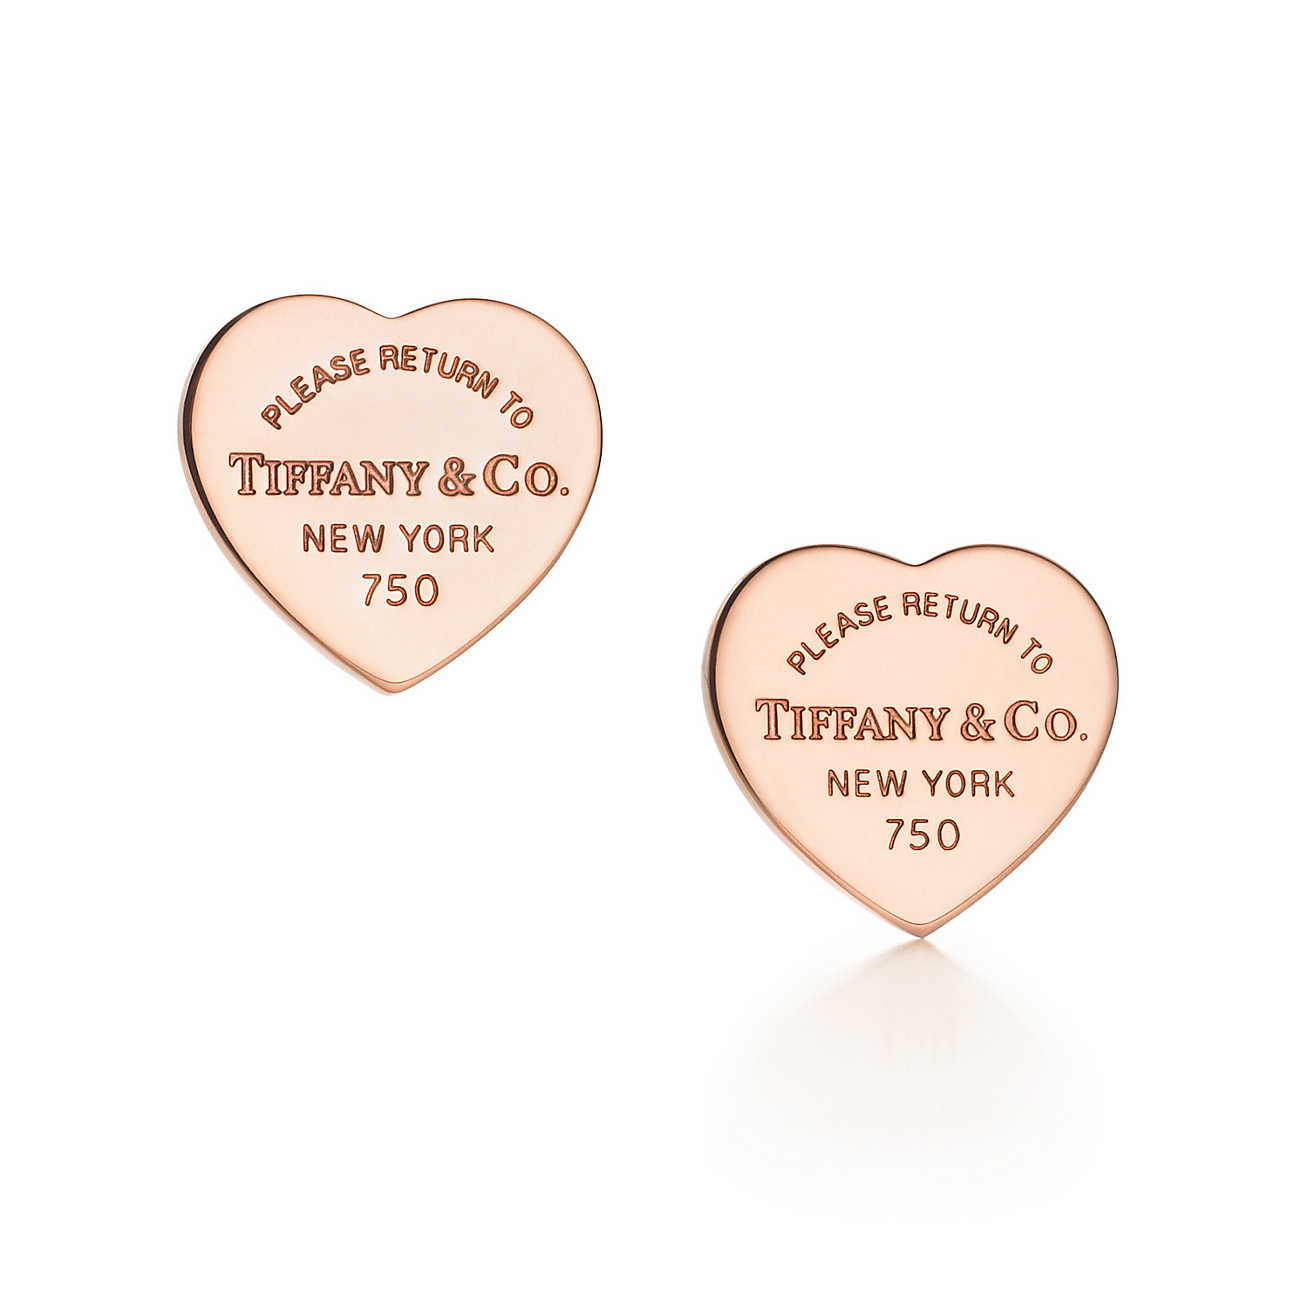 tiffany co return to tiffanytm mini heart tag earrings. Black Bedroom Furniture Sets. Home Design Ideas